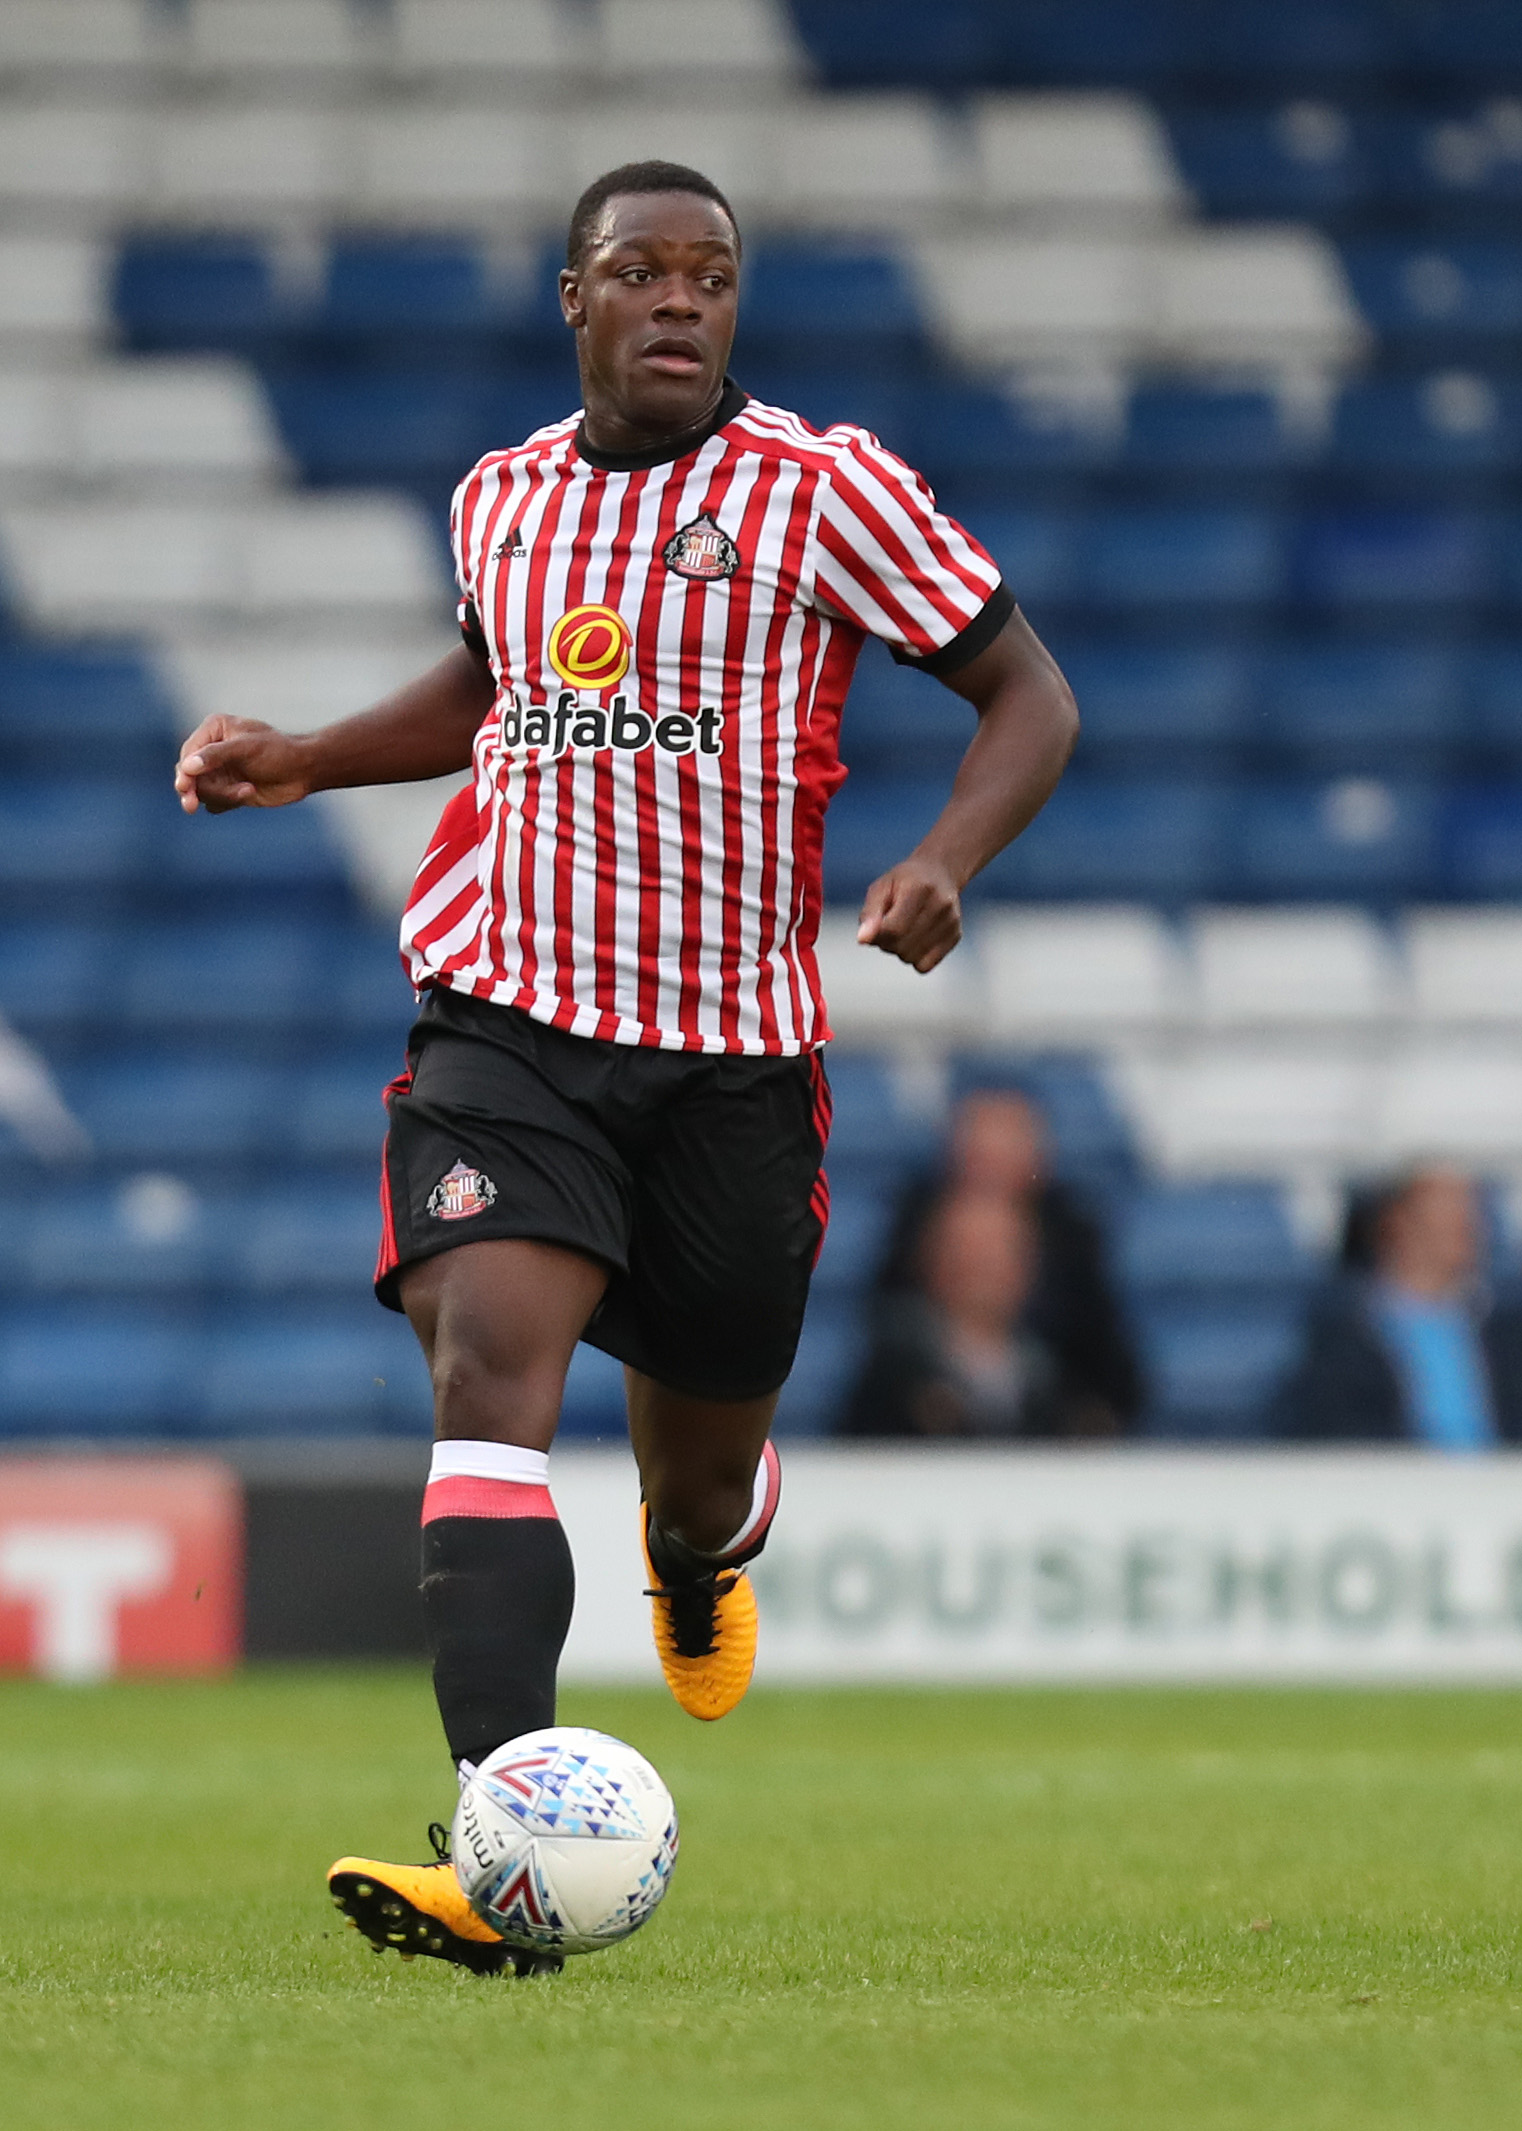 ON THE SIDELINES: Everton target Lamine Kone is nursing a long-term knee injury